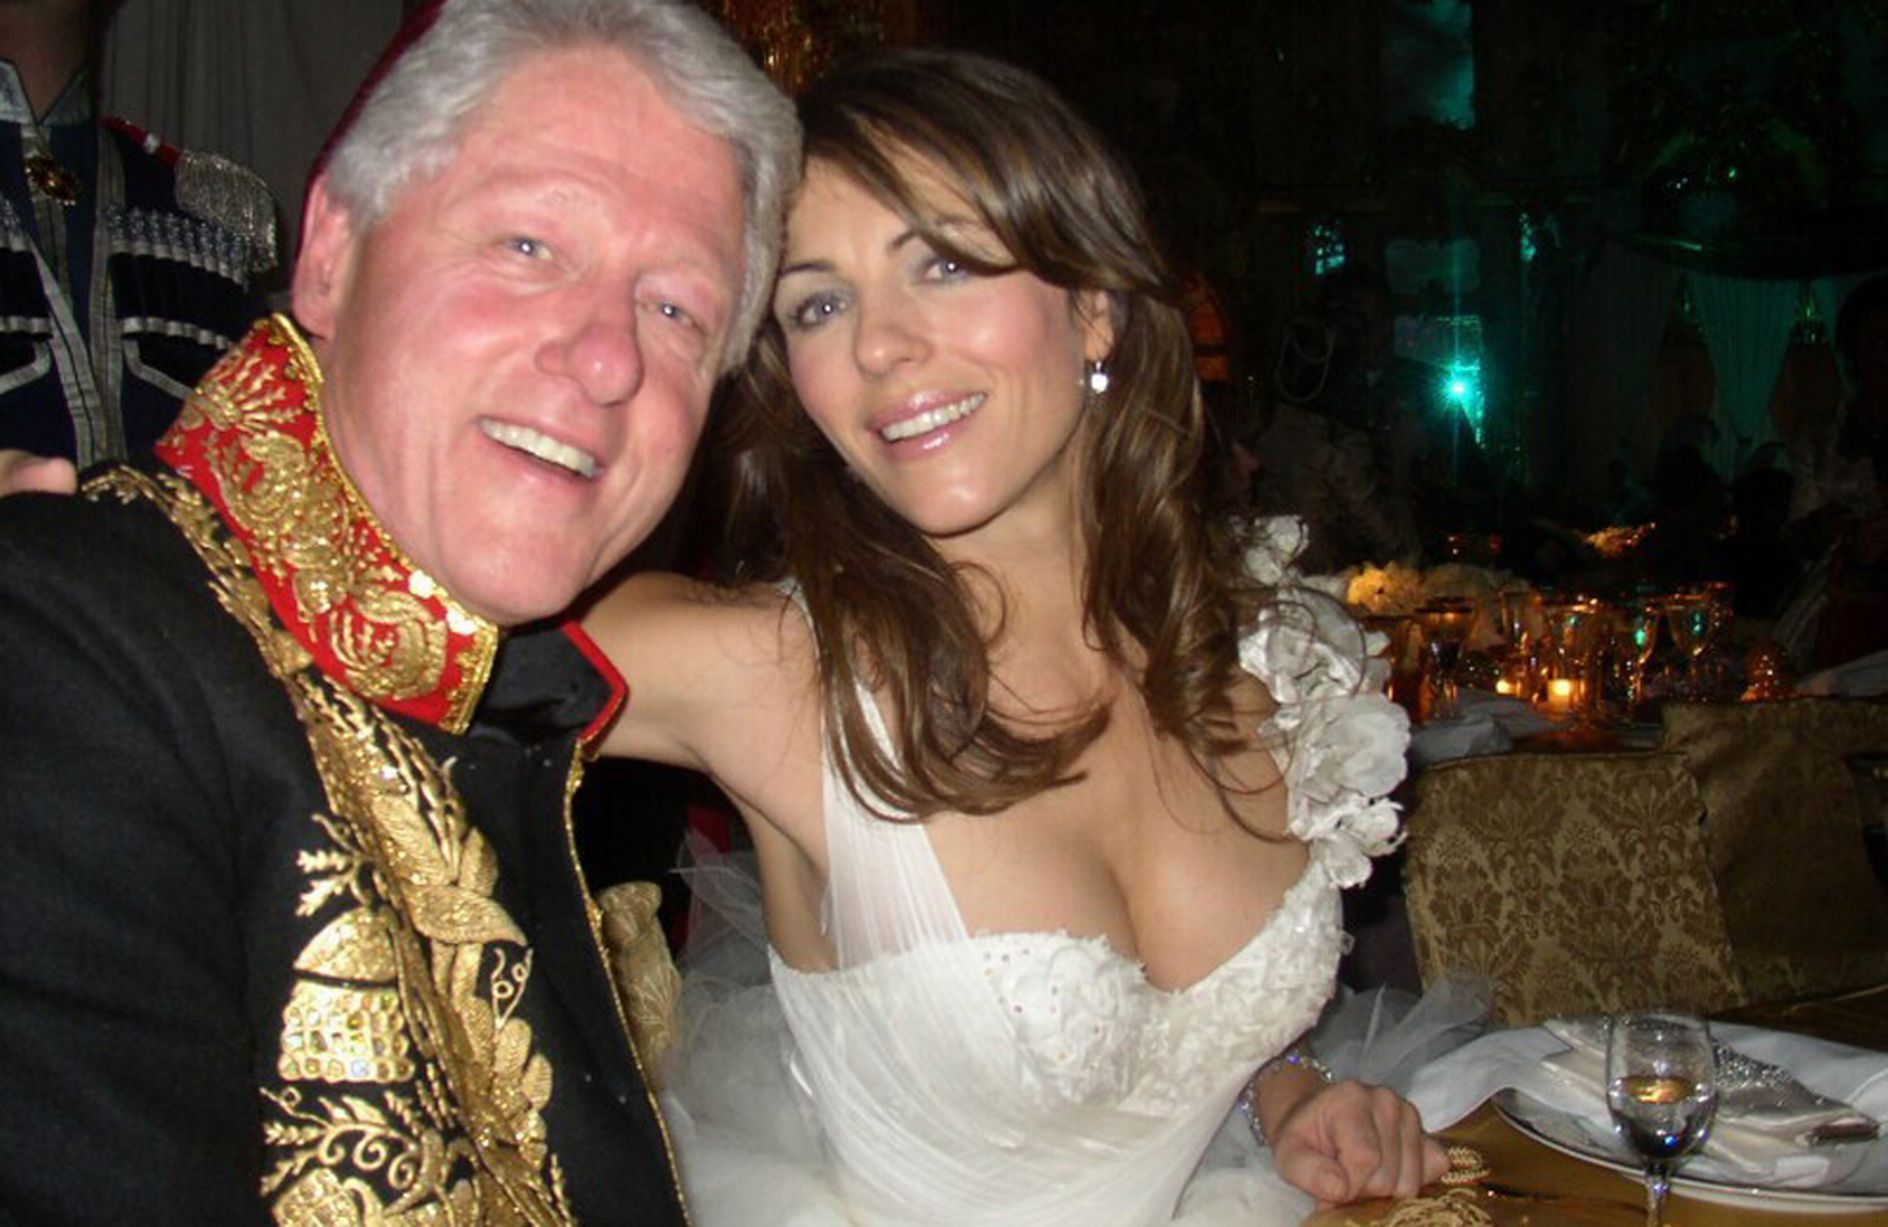 Image result for who will occupy the white house after the election, Bill or Malanie